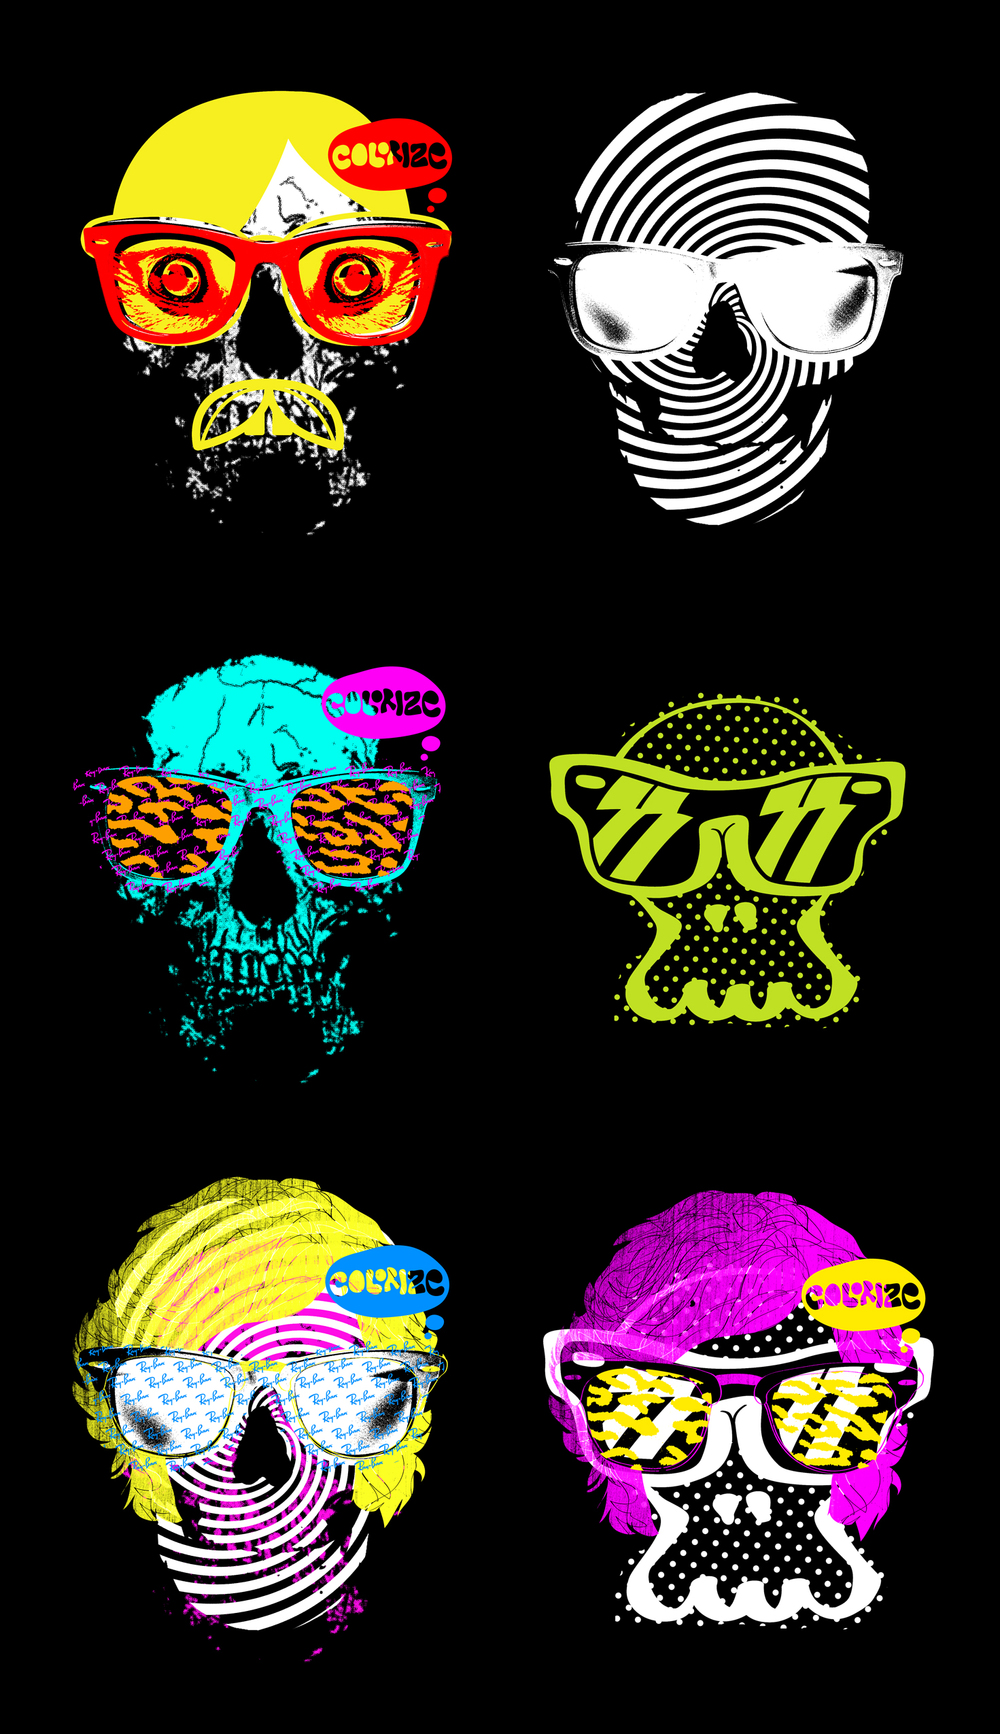 Ray-Ban-Never-Hide-Colorize-skulls